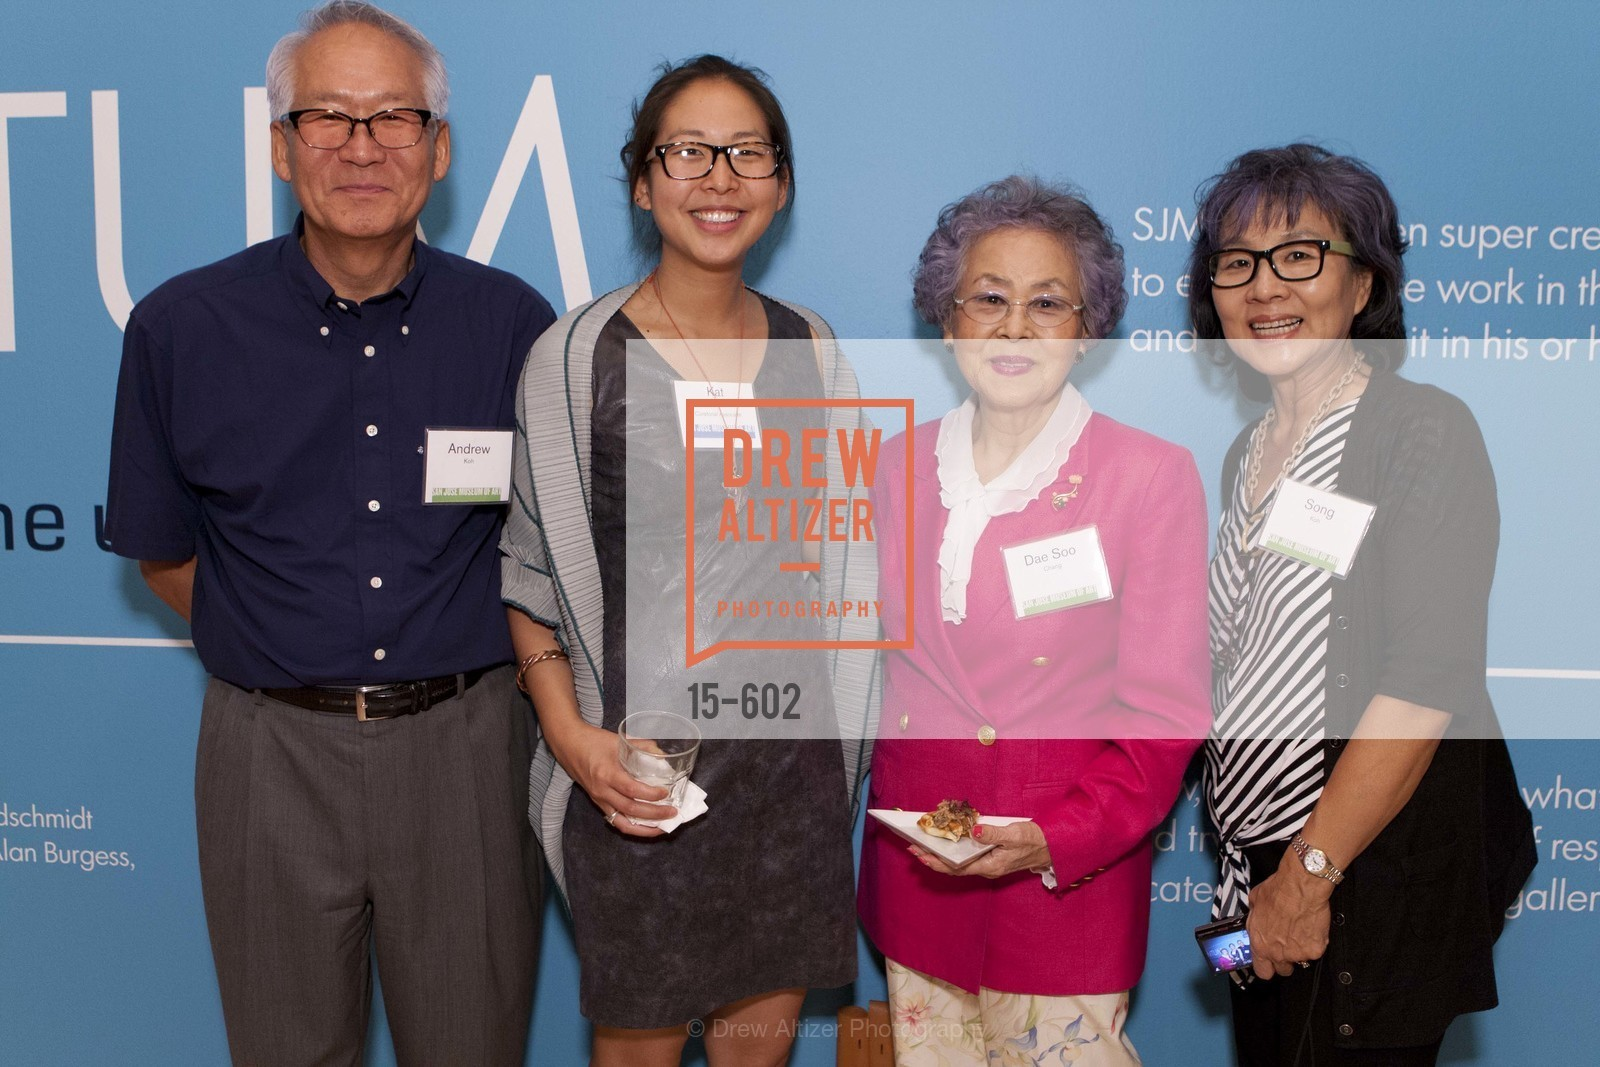 Andrew Koh, Kat Koh, Dae Soo Chang, Song Koh, SAN JOSE MUSEUM OF ART Fall Reception Opening, US, October 9th, 2014,Drew Altizer, Drew Altizer Photography, full-service agency, private events, San Francisco photographer, photographer california